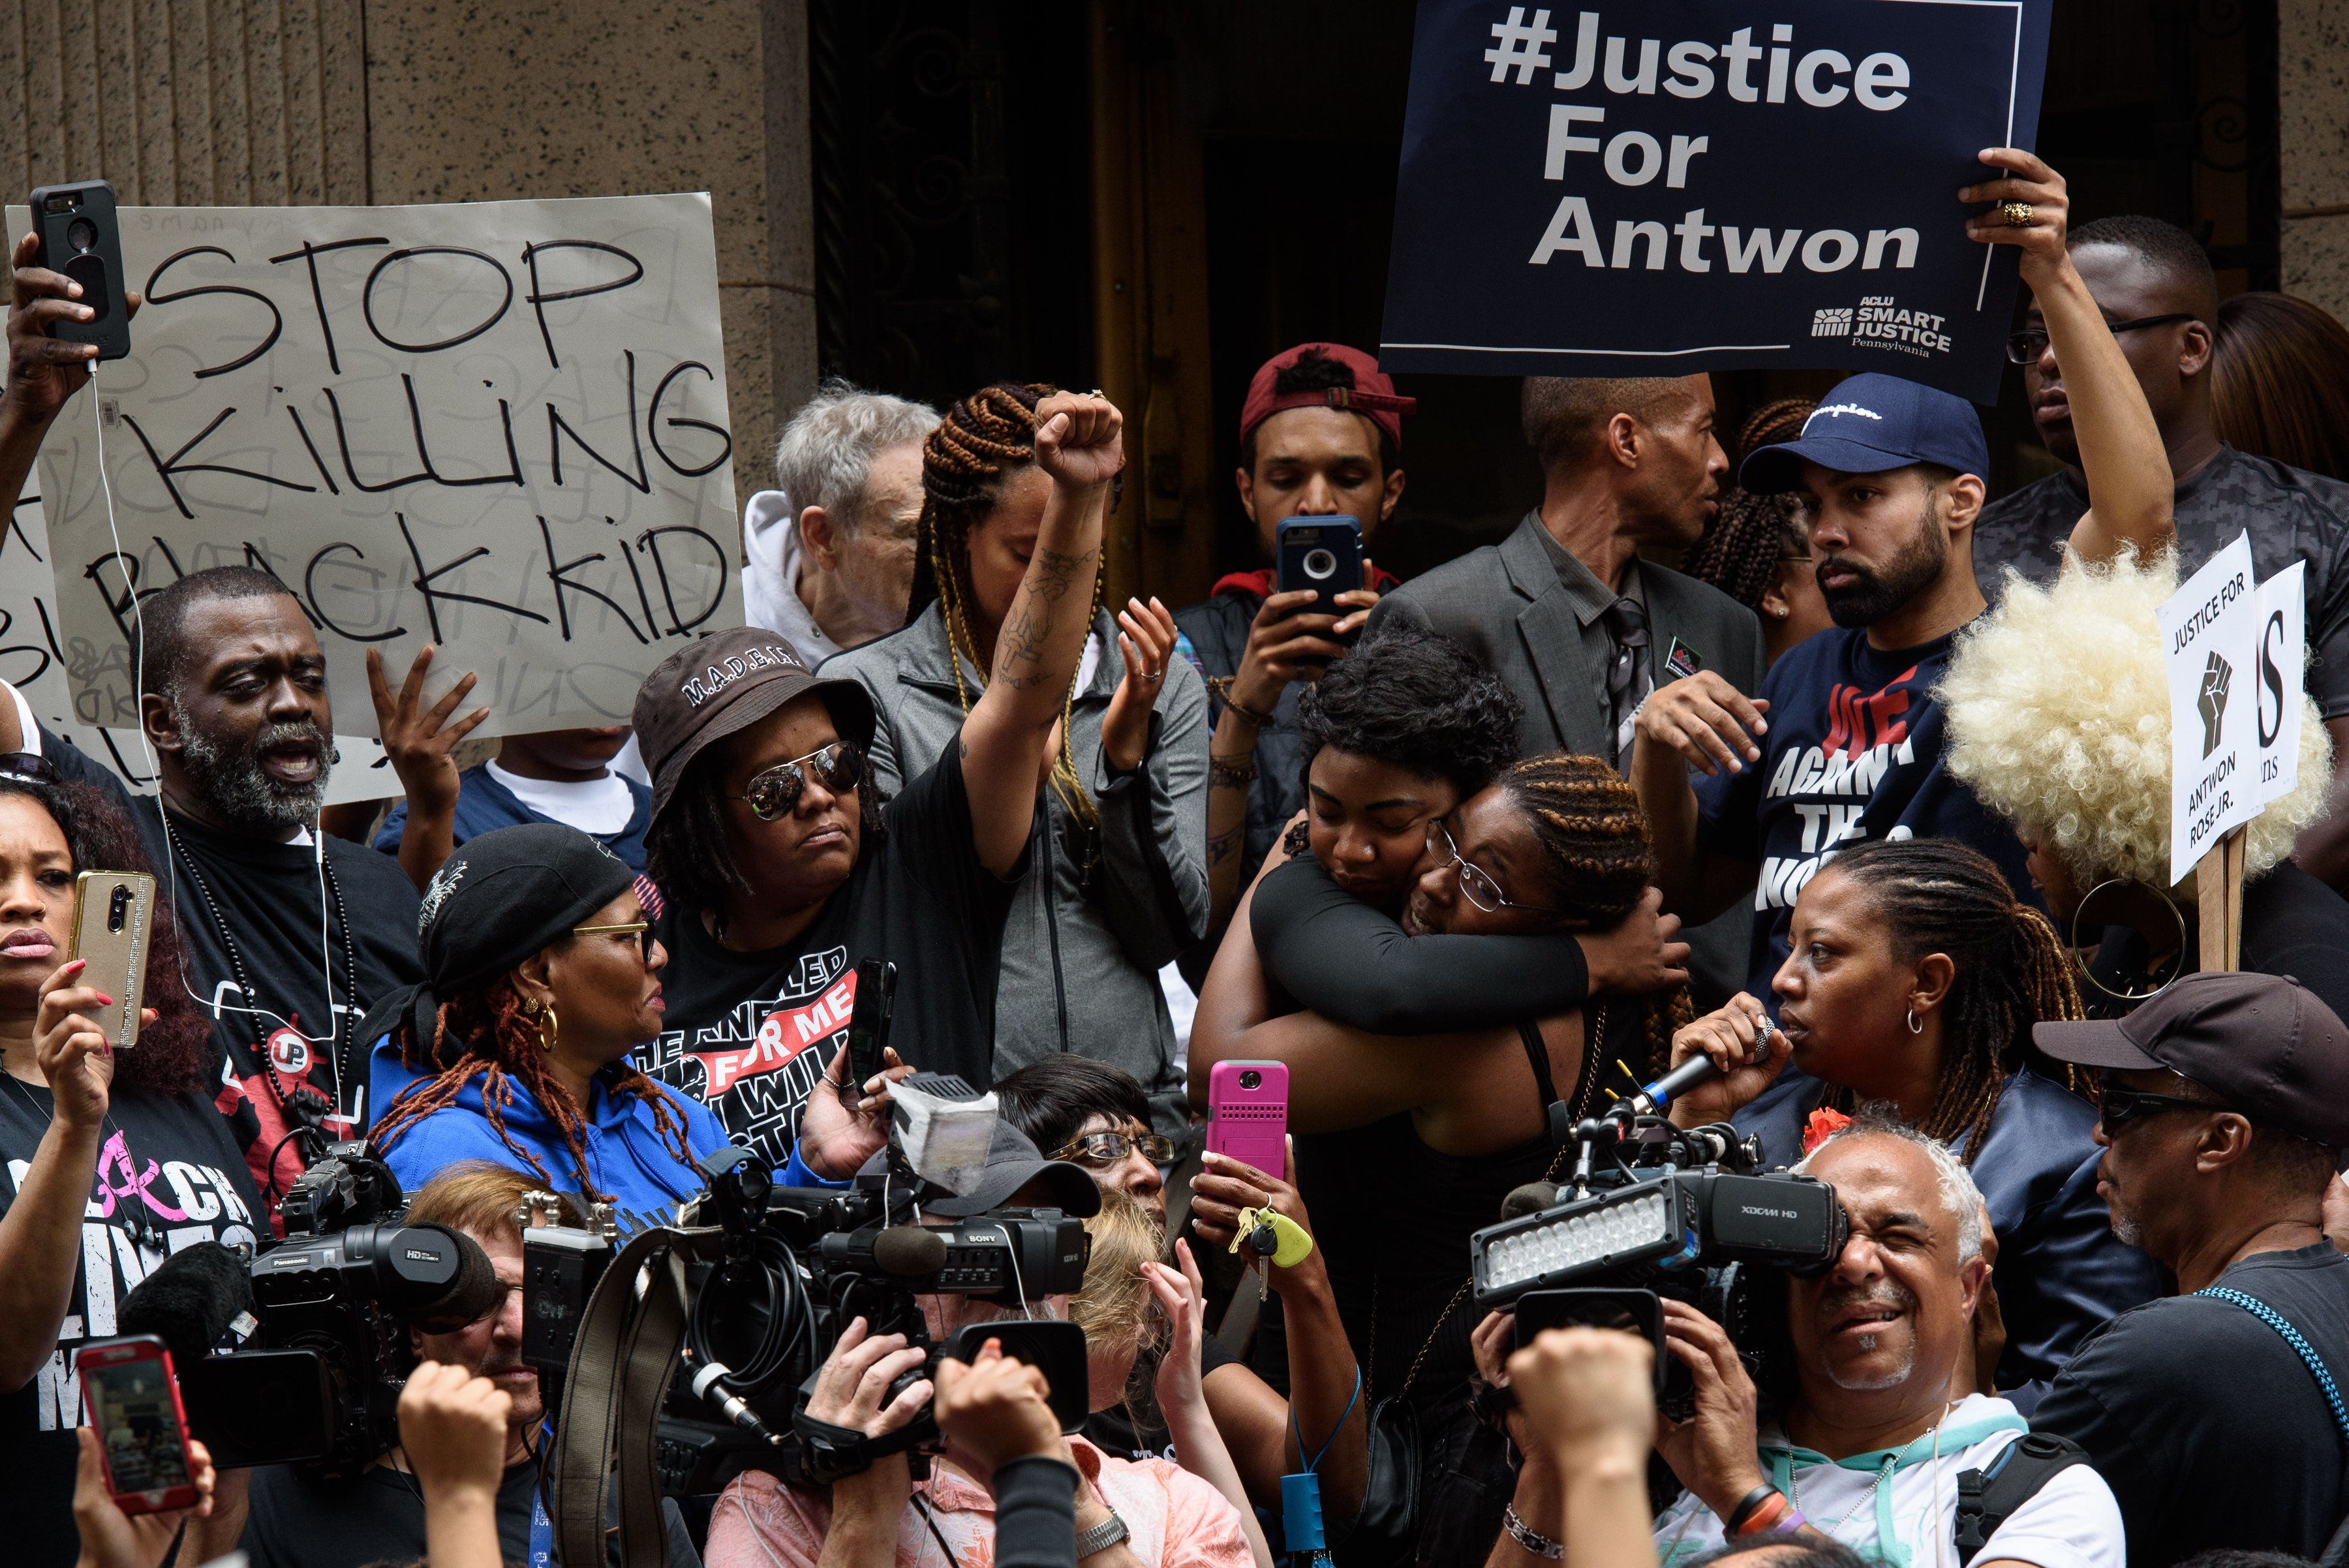 PITTSBURGH, PA - JUNE 21: Protestors embrace as more than 200 people gathered for a rally to protest the fatal shooting of an unarmed black teen at the Allegheny County Courthouse on June 21, 2018 in Pittsburgh, Pennsylvania. The rally comes in the aftermath of the fatal shooting of Antwon Rose by an East Pittsburgh police officer Tuesday night as the 17-year-old ran after being stopped by police in a vehicle suspected of being involved in an earlier shooting. The organizers called on Allegheny County District Attorney Stephen Zappala Jr. to bring criminal charges against the officer.  (Photo by Justin Merriman/Getty Images)